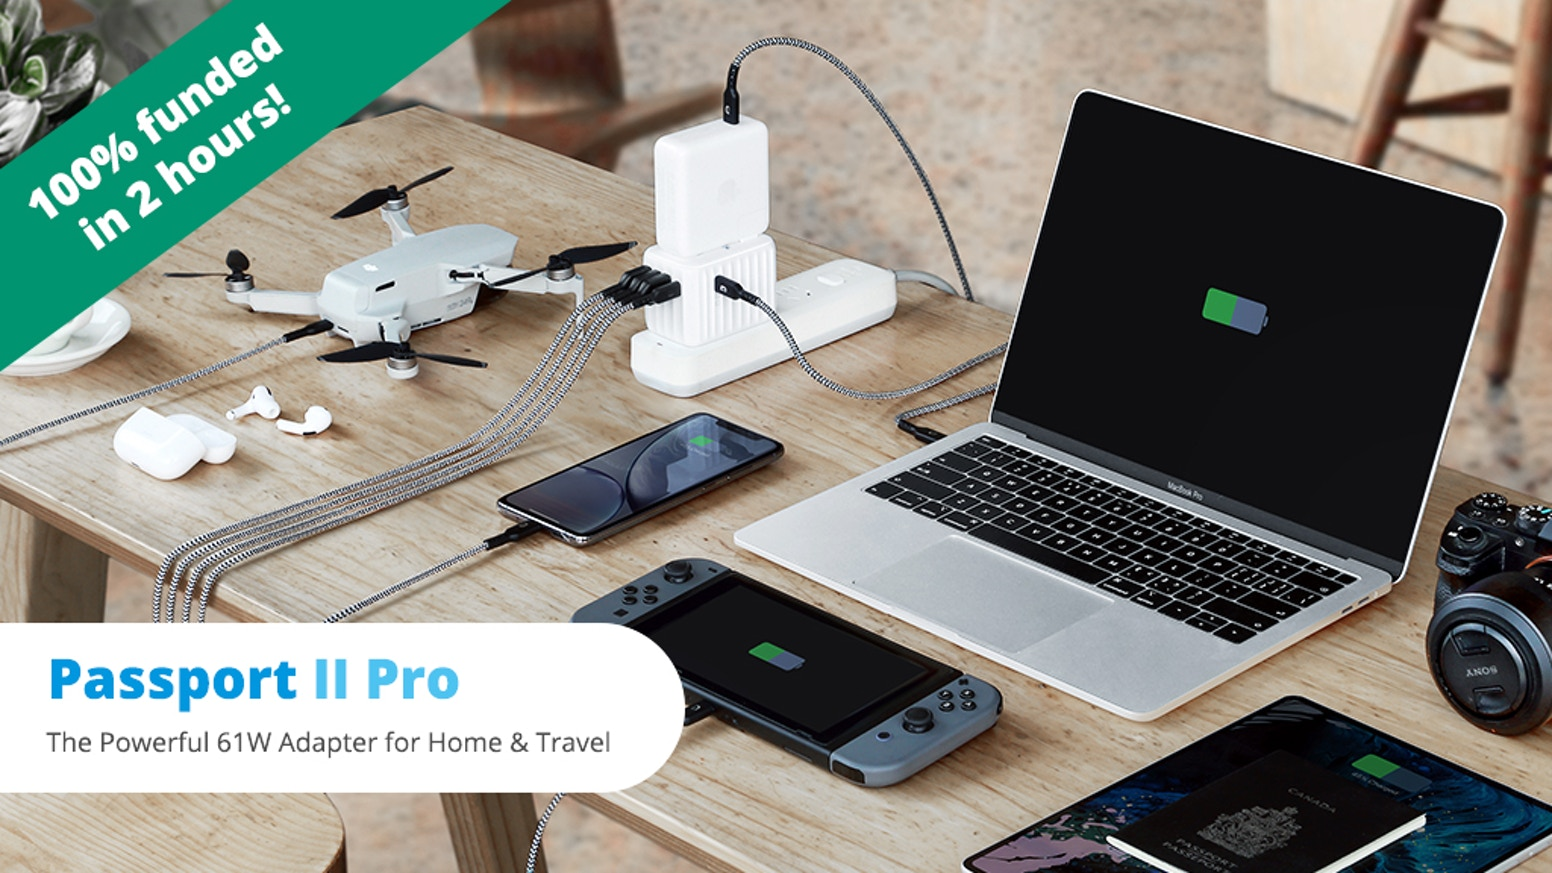 Super-Fast 61W USB-C PD | GaN Tech | Charge 6 Devices at Once | PPS for Samsung | 10A Auto-Resetting Fuse | Works in 200 Countries